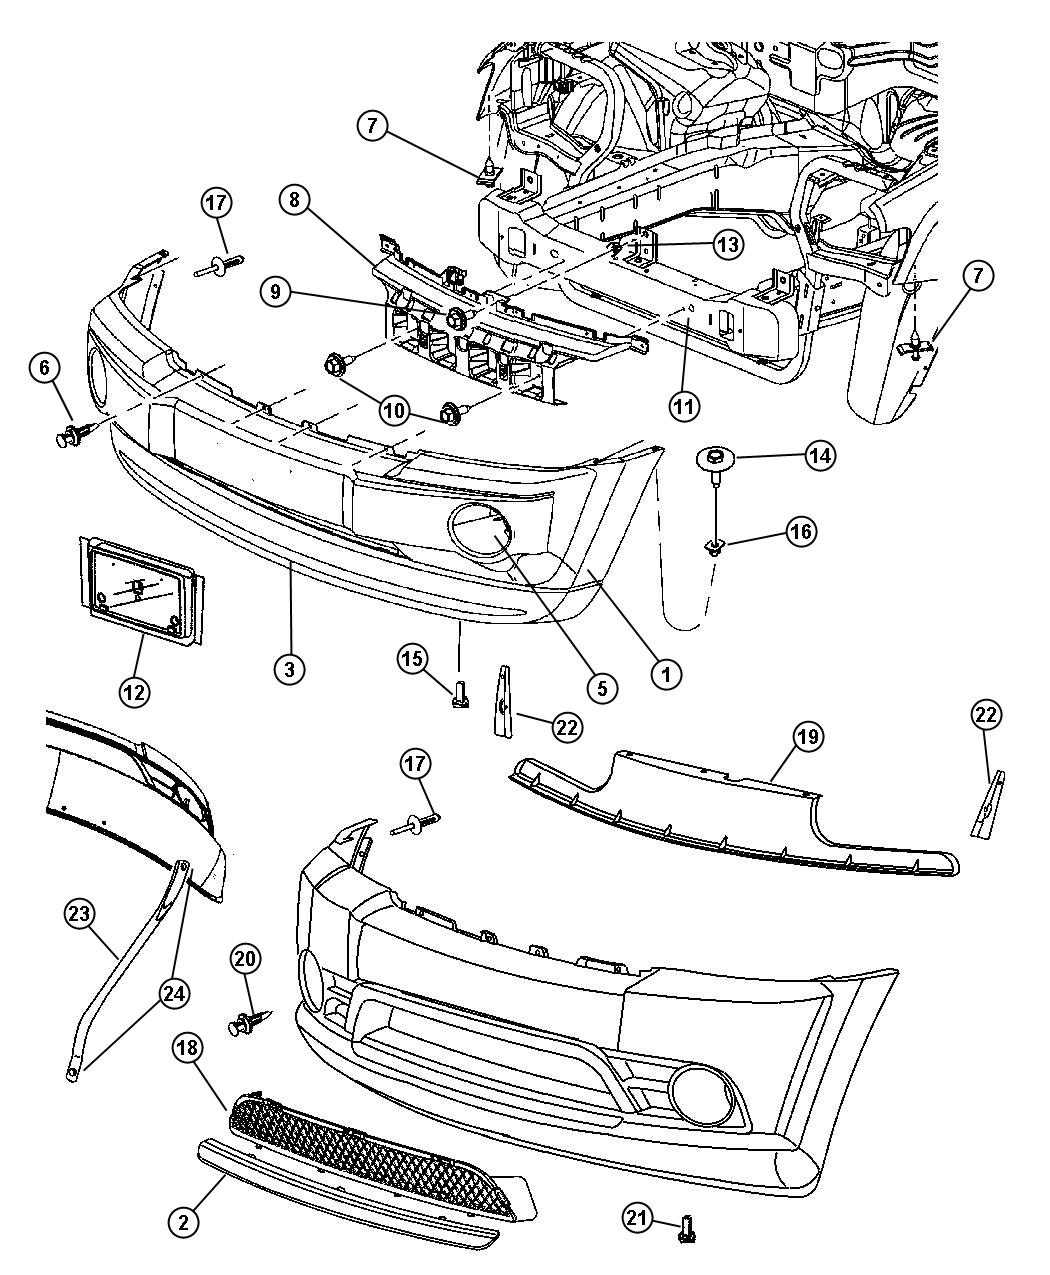 Toyota Highlander Rear Suspension together with Rav4 Parts Diagram Exhaust  ponents moreover Diagram Of Undercarriage Pontiac besides Dodge Challenger Exhaust Diagram additionally Chrysler Aspen Front End Diagram. on 422705114996474821